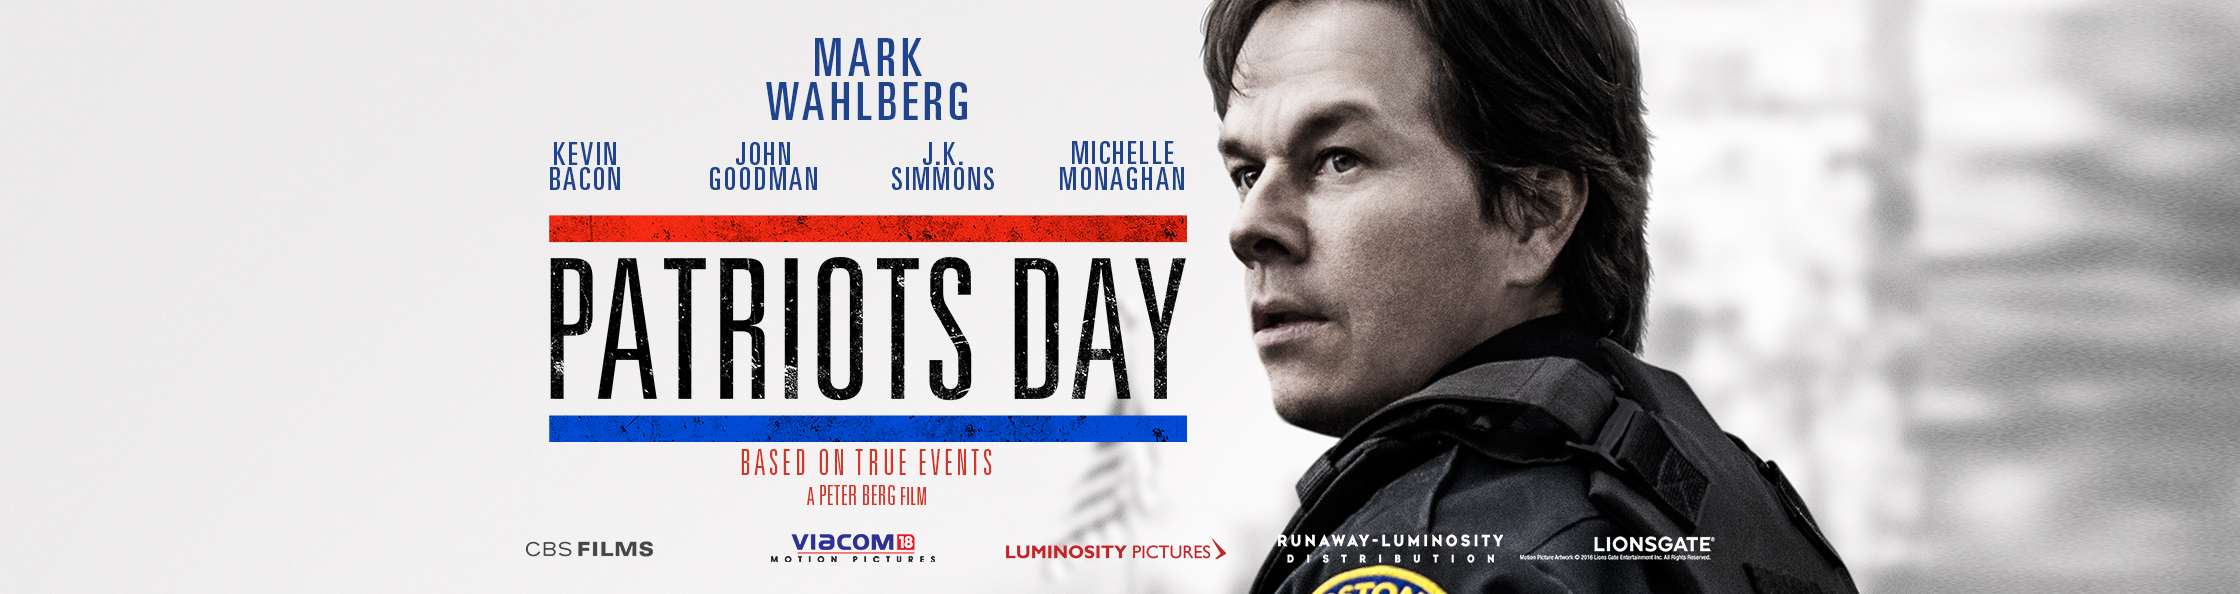 patriots-day-web-banner_rllp